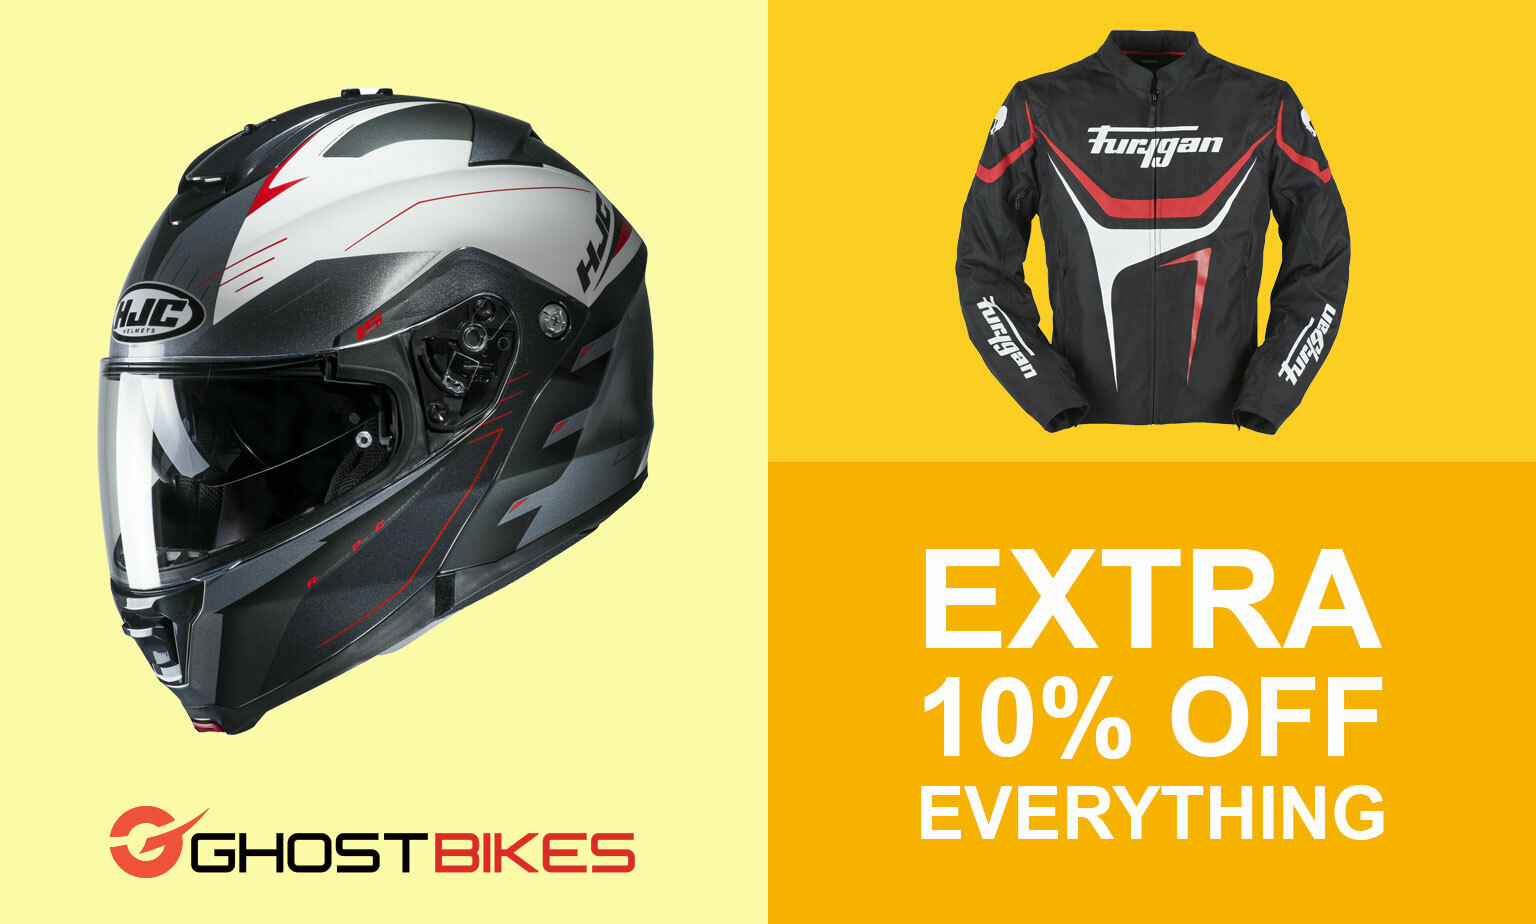 Further 10% off Motorcycle Hot Products